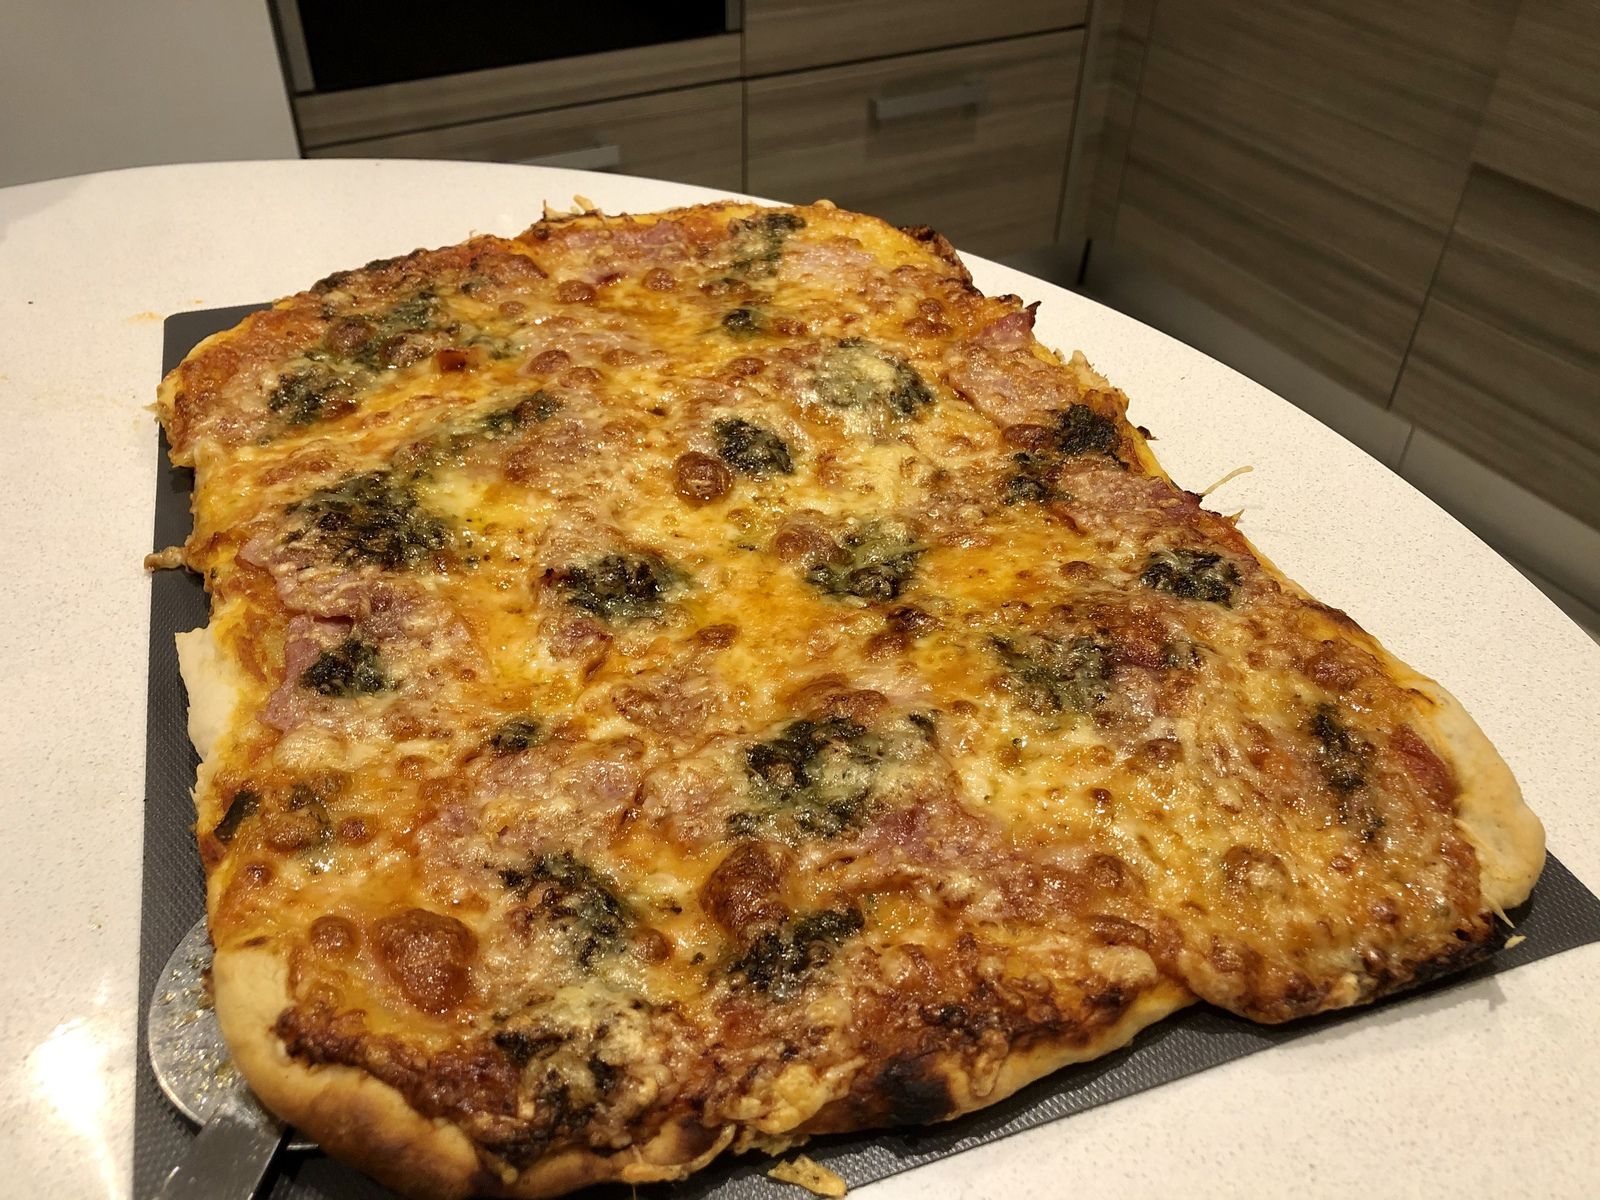 Pizza jambon et pesto